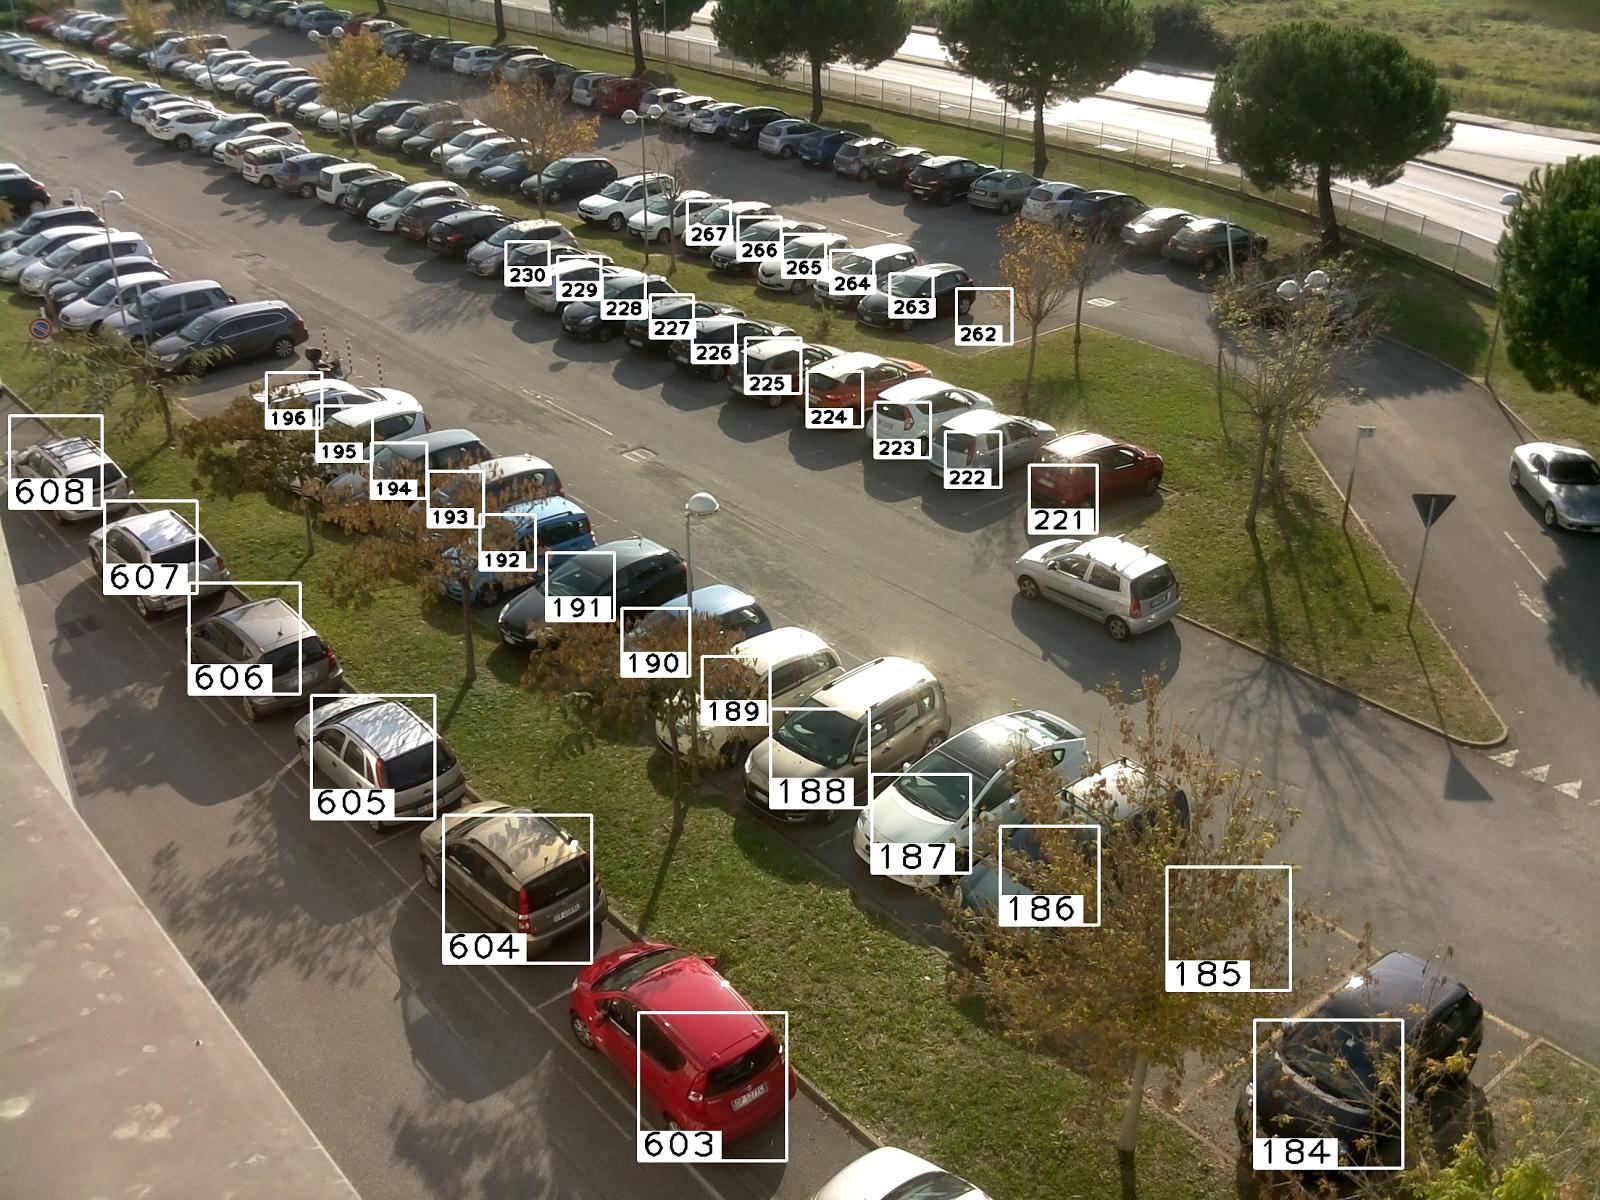 CNR Parking Dataset - Dataset for visual occupancy detection